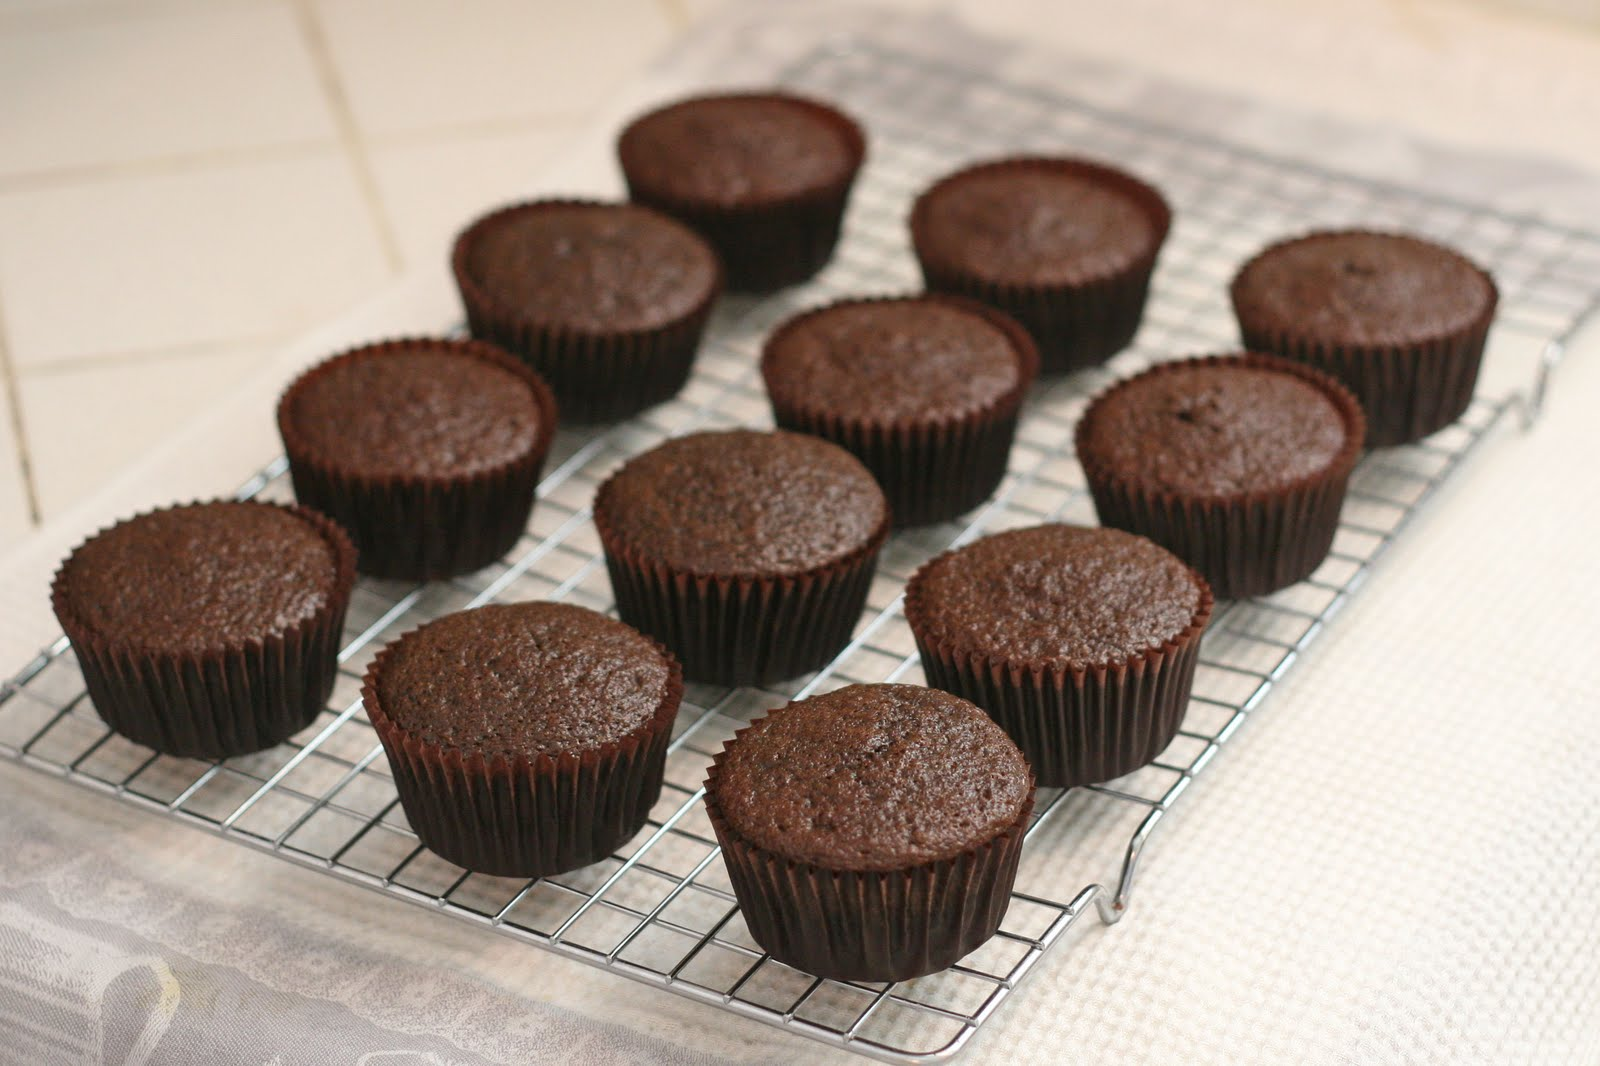 Can You Use A Cake Pan On Stove